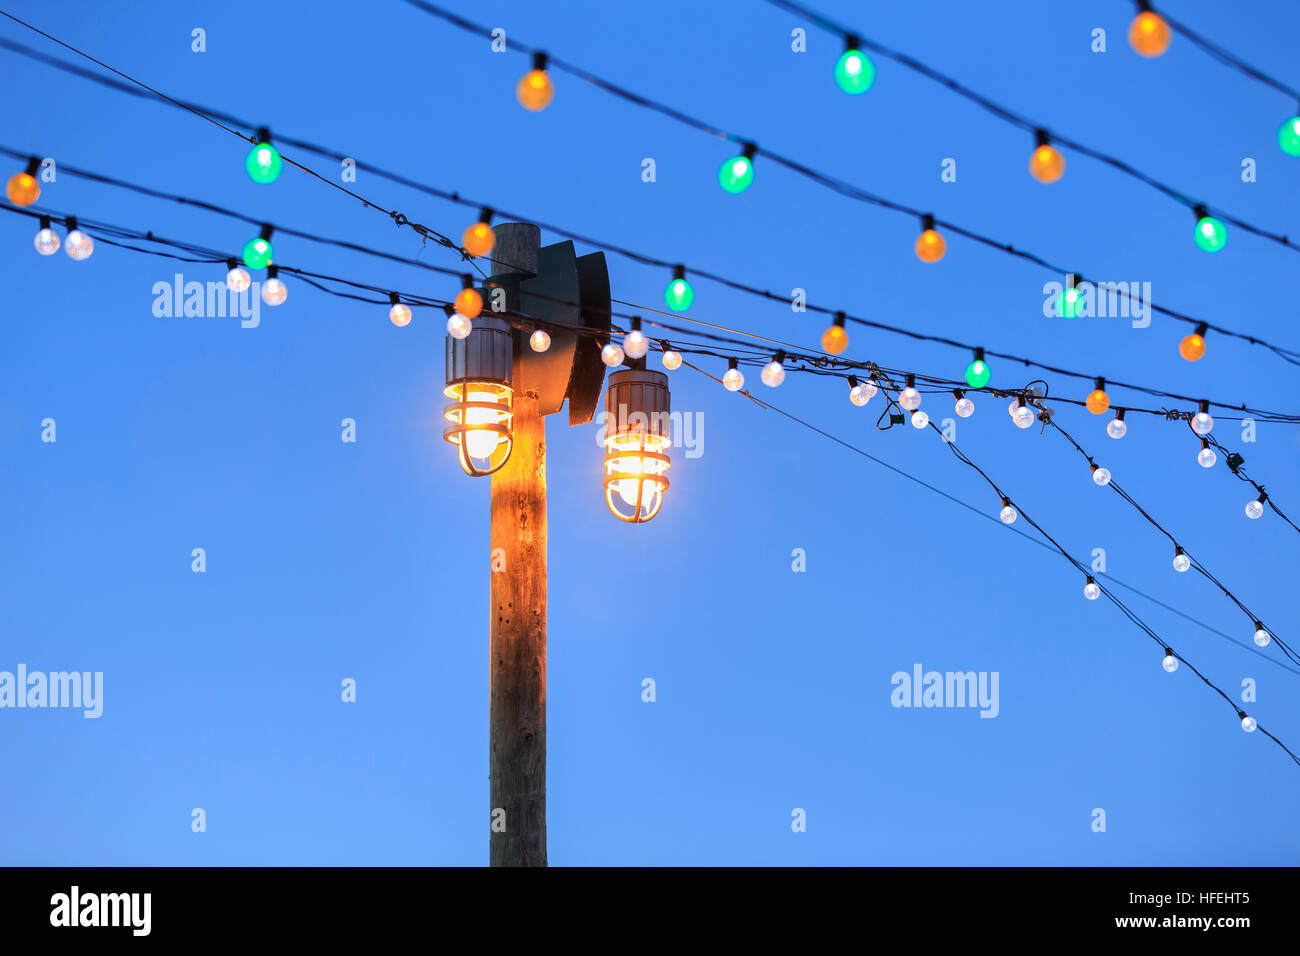 Christmas lights at The Forks, Winnipeg, Manitoba, Canada. Stock Photo